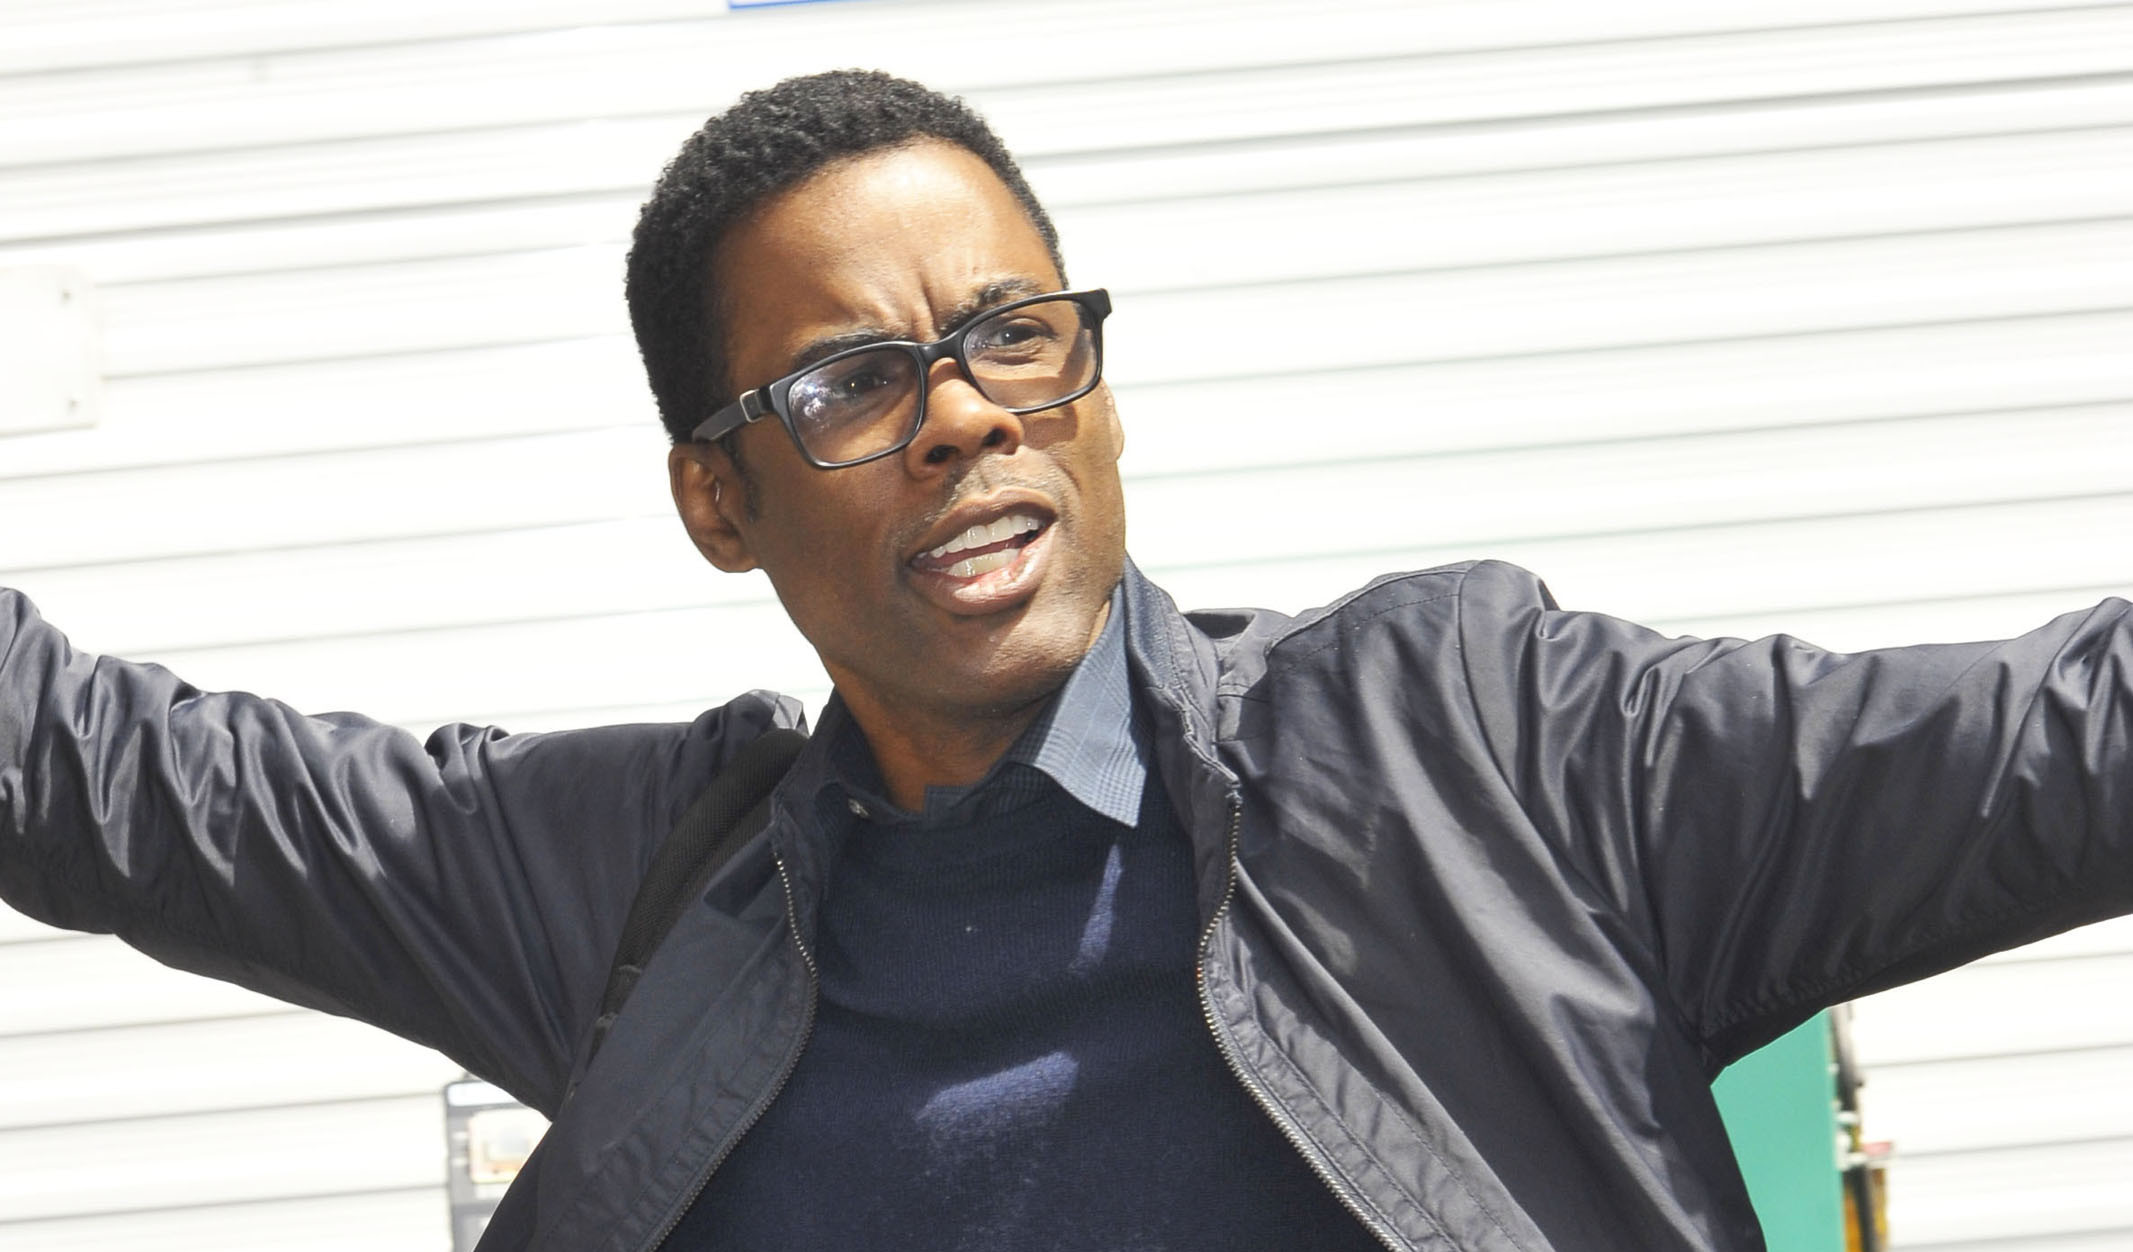 Chris Rock's Daughter has visitor visa